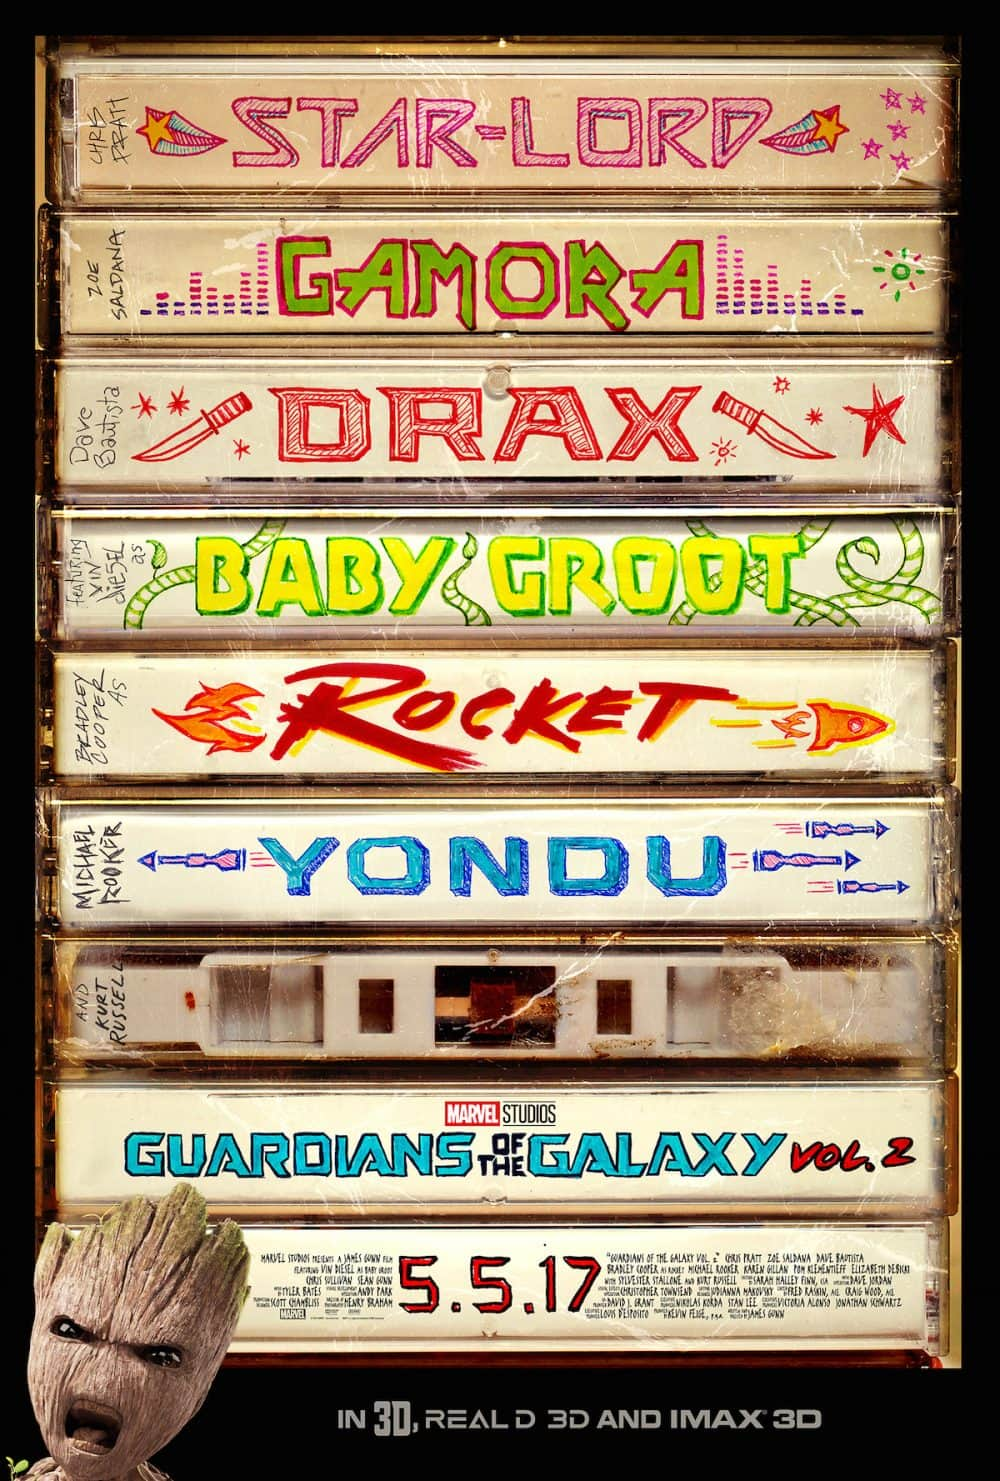 Guardians of the Galaxy Vol. 2 Newest Movie Poster